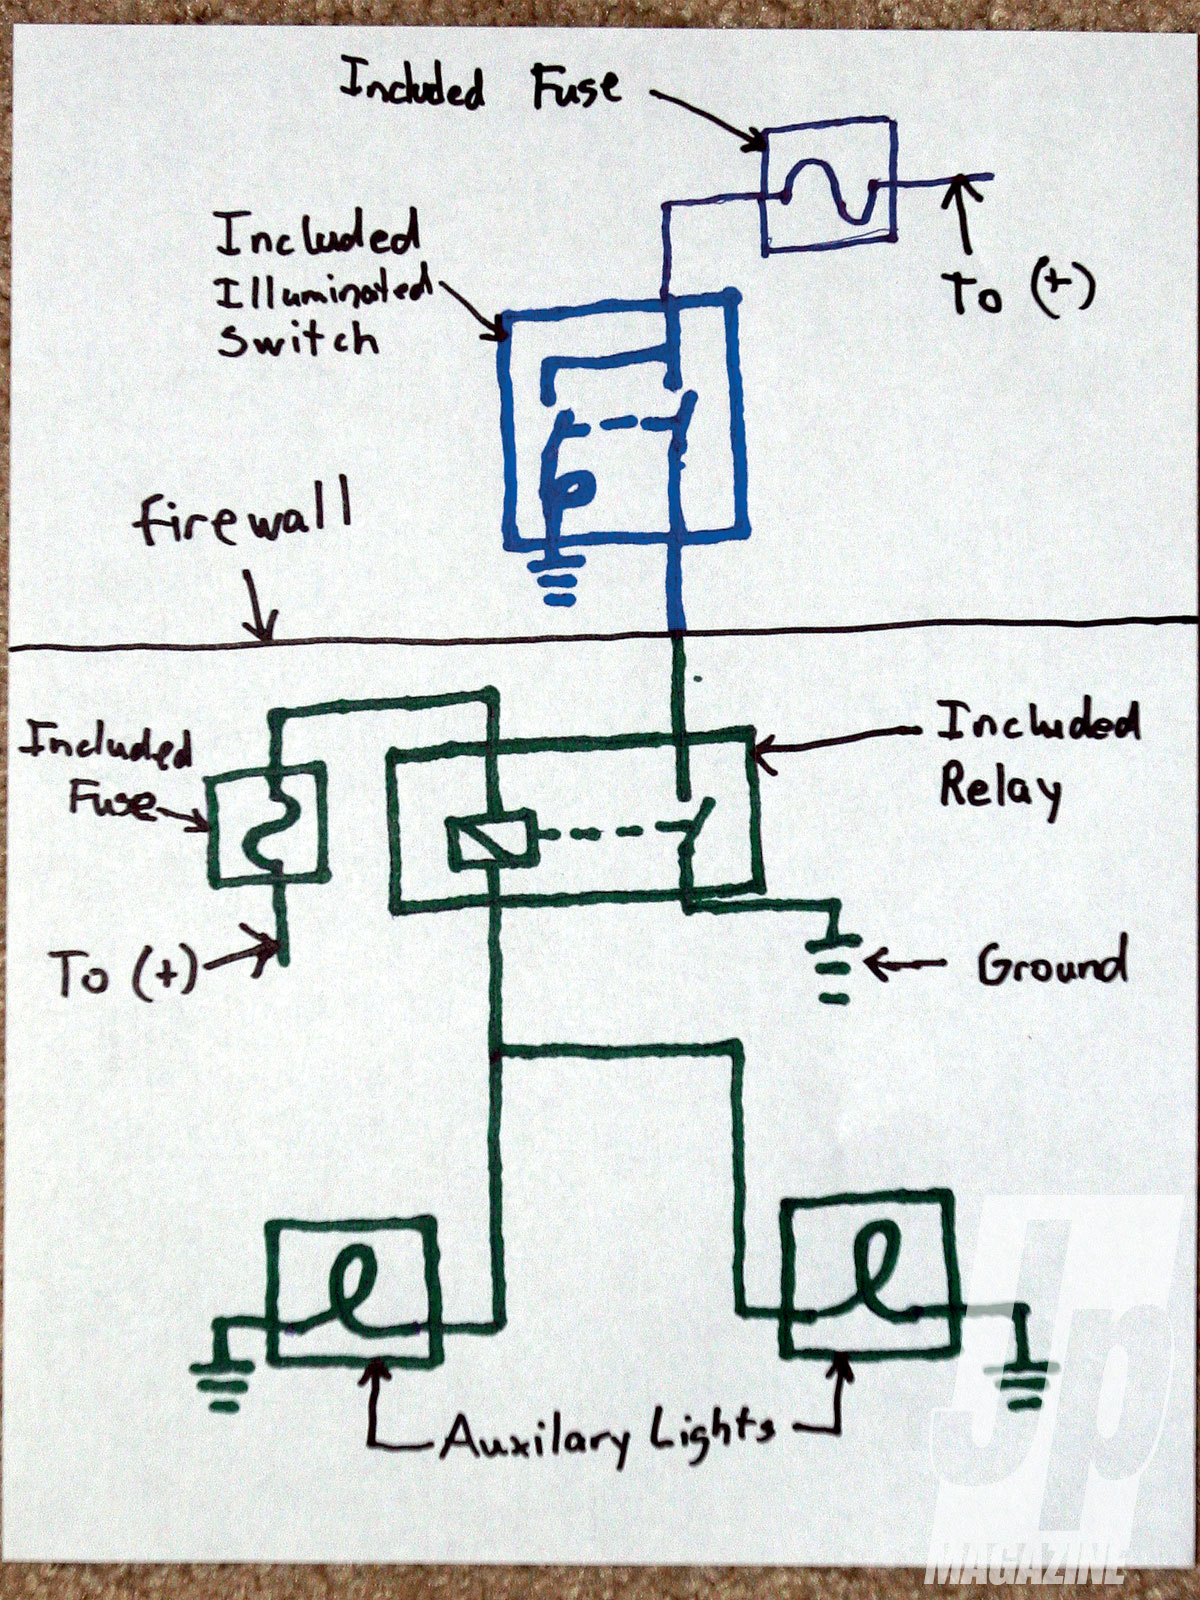 hight resolution of 154 1011 november 2010 randys electrical corner eagle eye wiring diagram photo 03